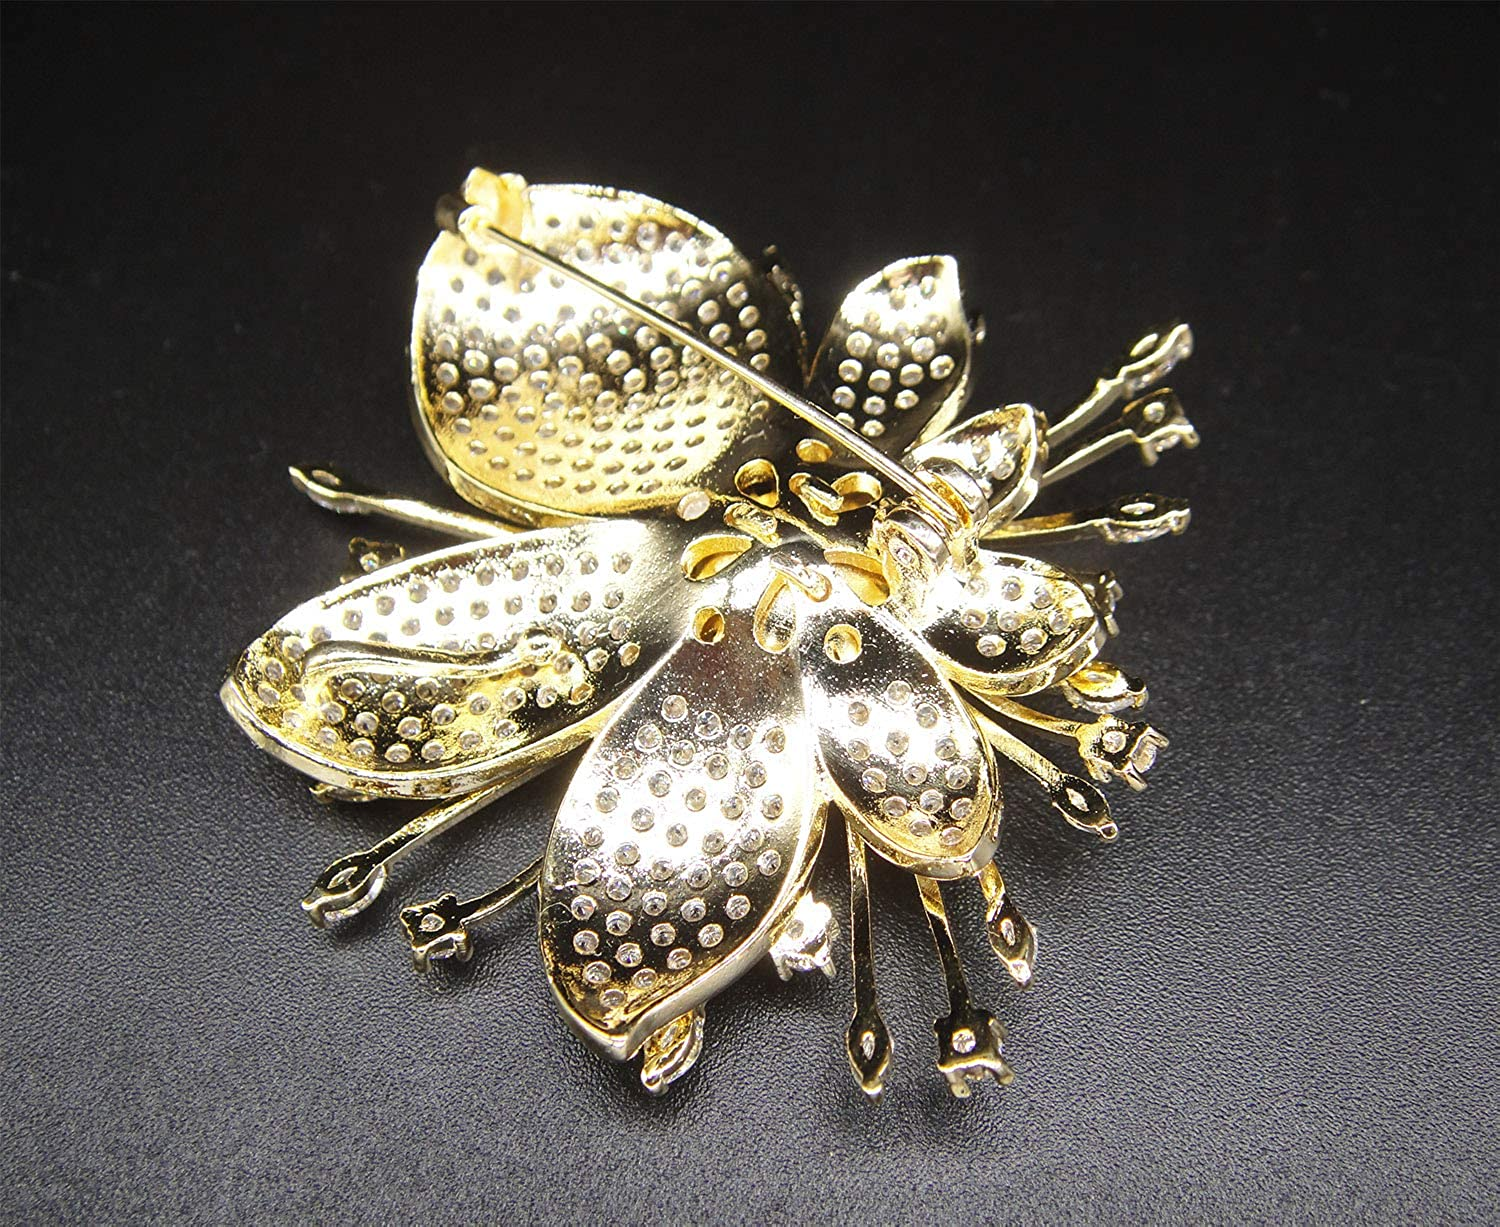 SUNNYHER Fashion CZ Jewelry Rhinestone Crystal Pearl 9mm Orchid Flower Bouquet Brooch Lapel Pin for Women Girl